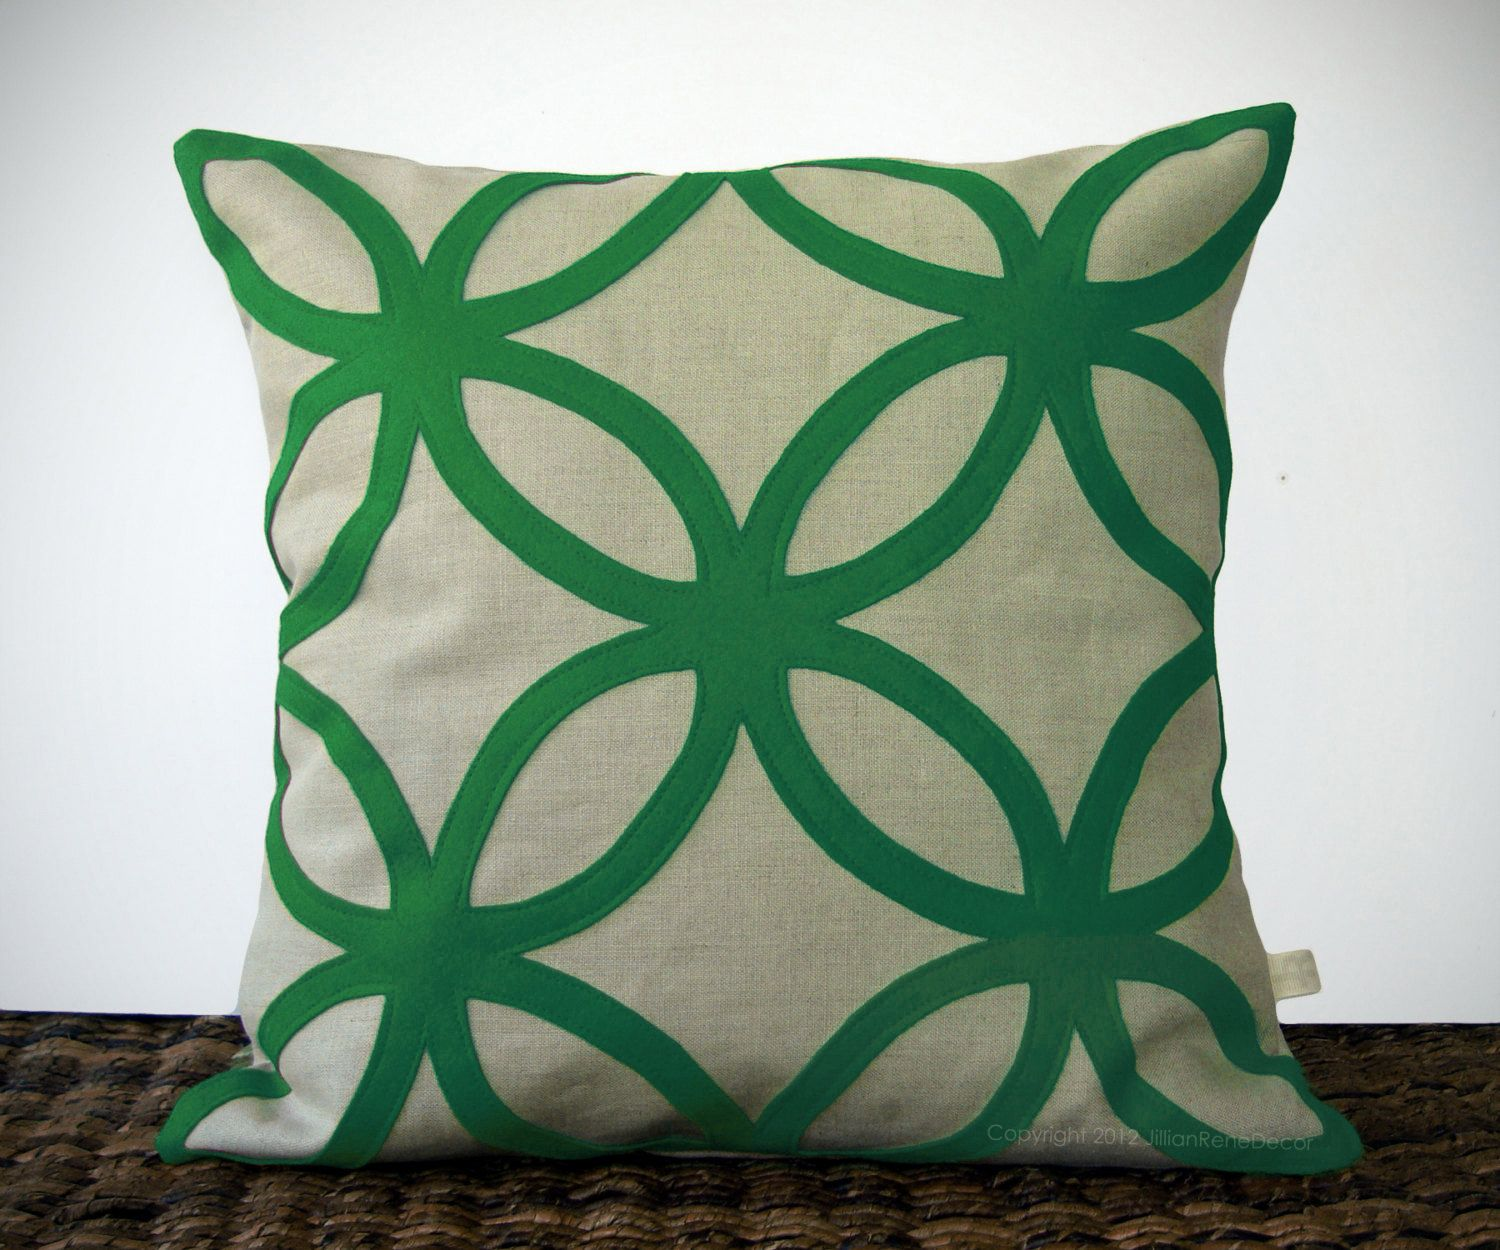 Geometric kelly green decorative pillow cover mod home decor by